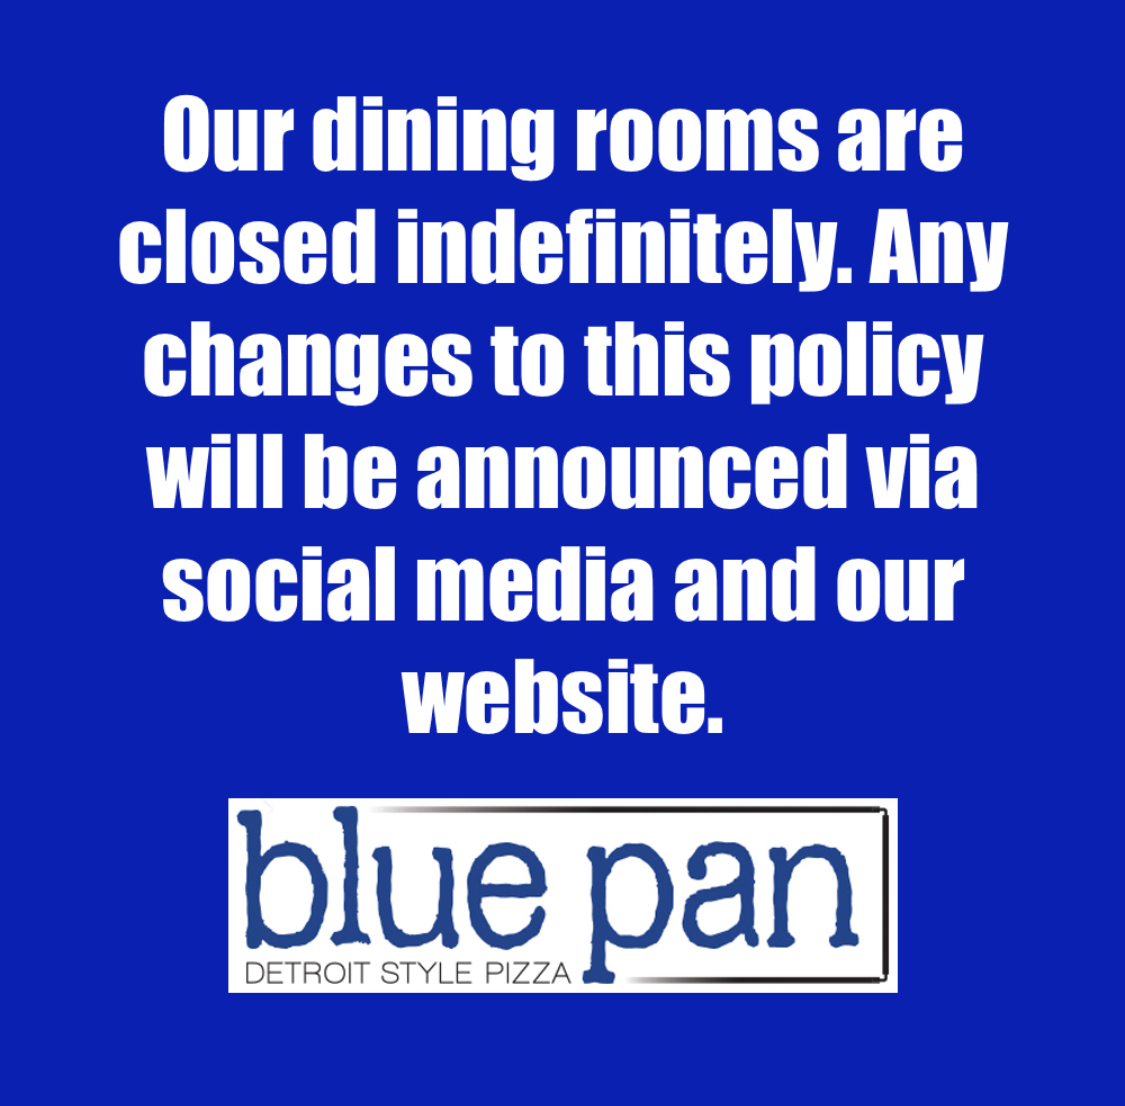 Dining Rooms closed indefinitely due to covid